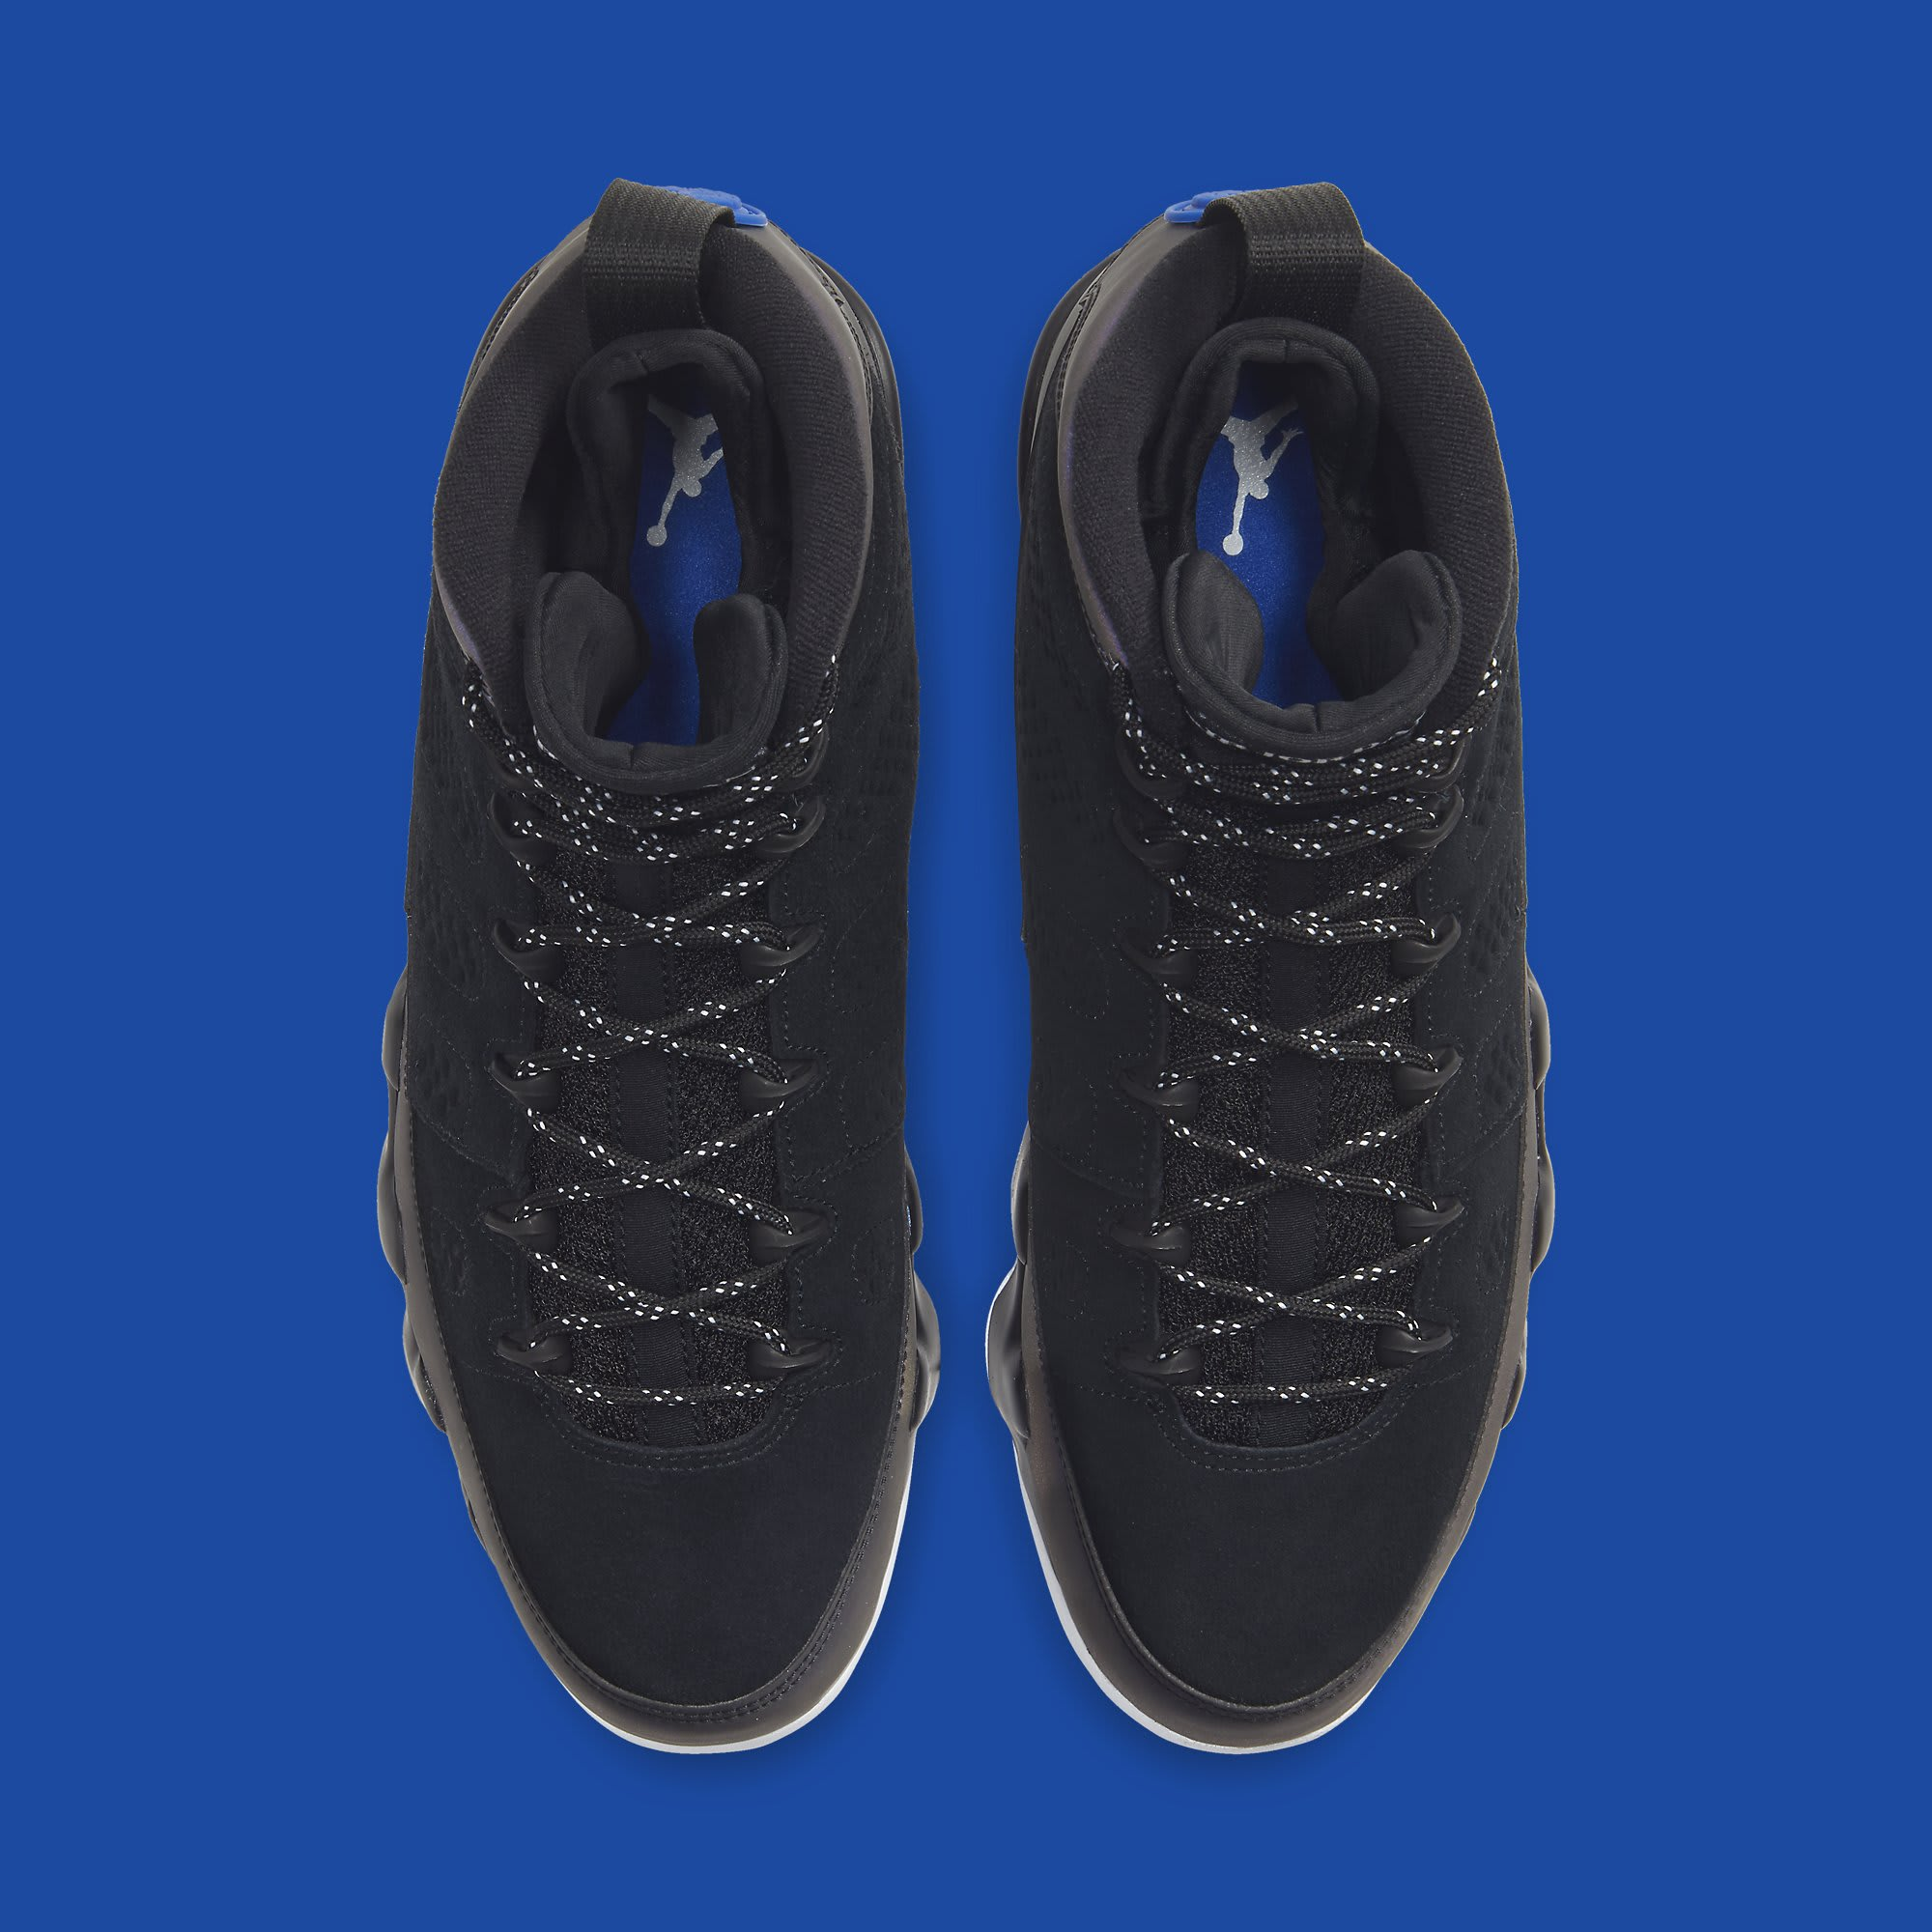 Air Jordan 9 Racer Blue Release Date CT8019-024 Top